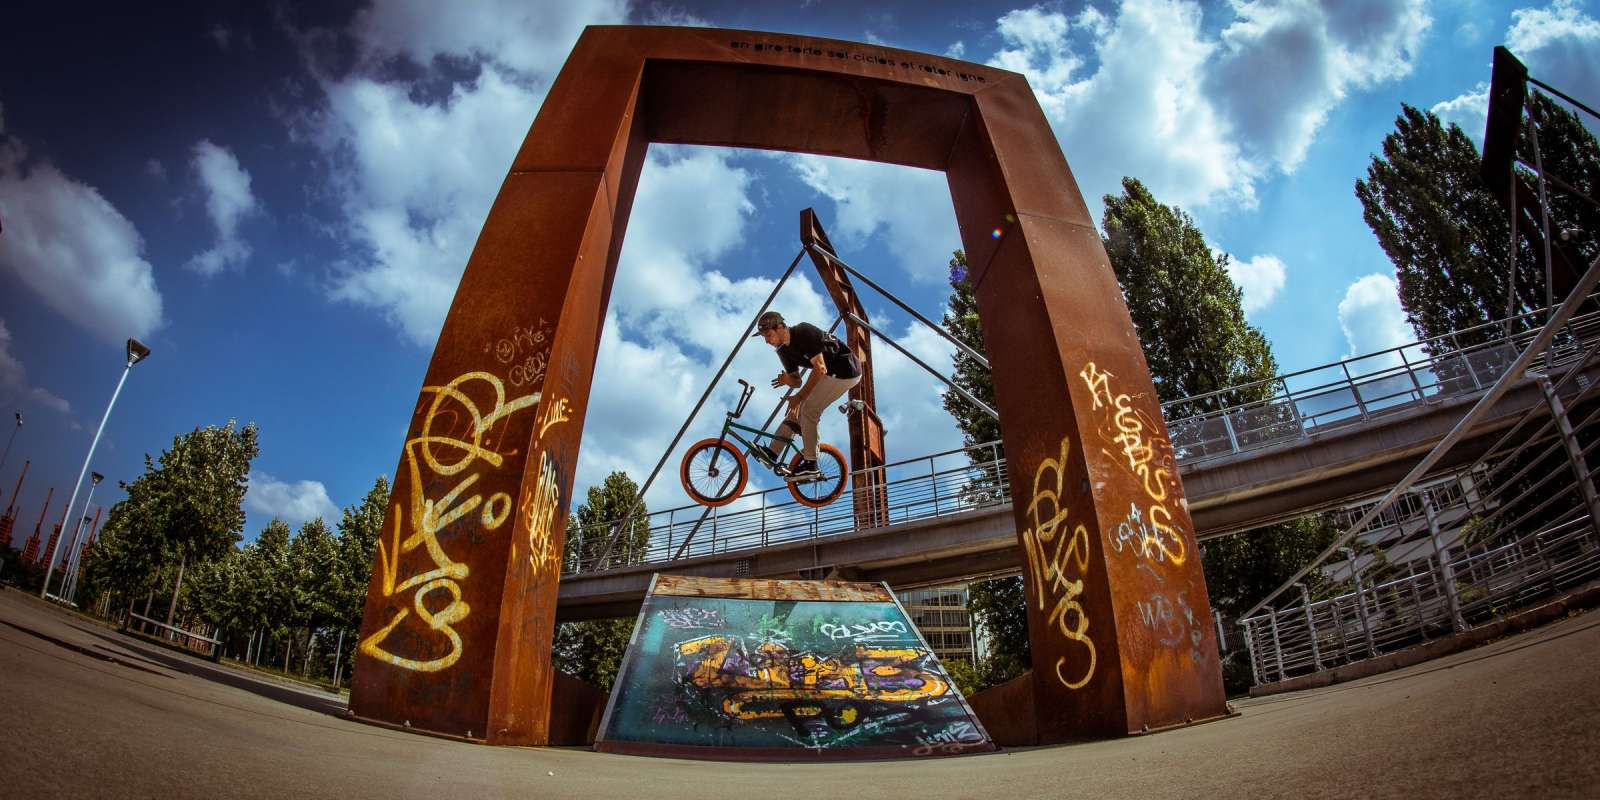 Photos of Monster Energy BMX rider Jason Eustathiou